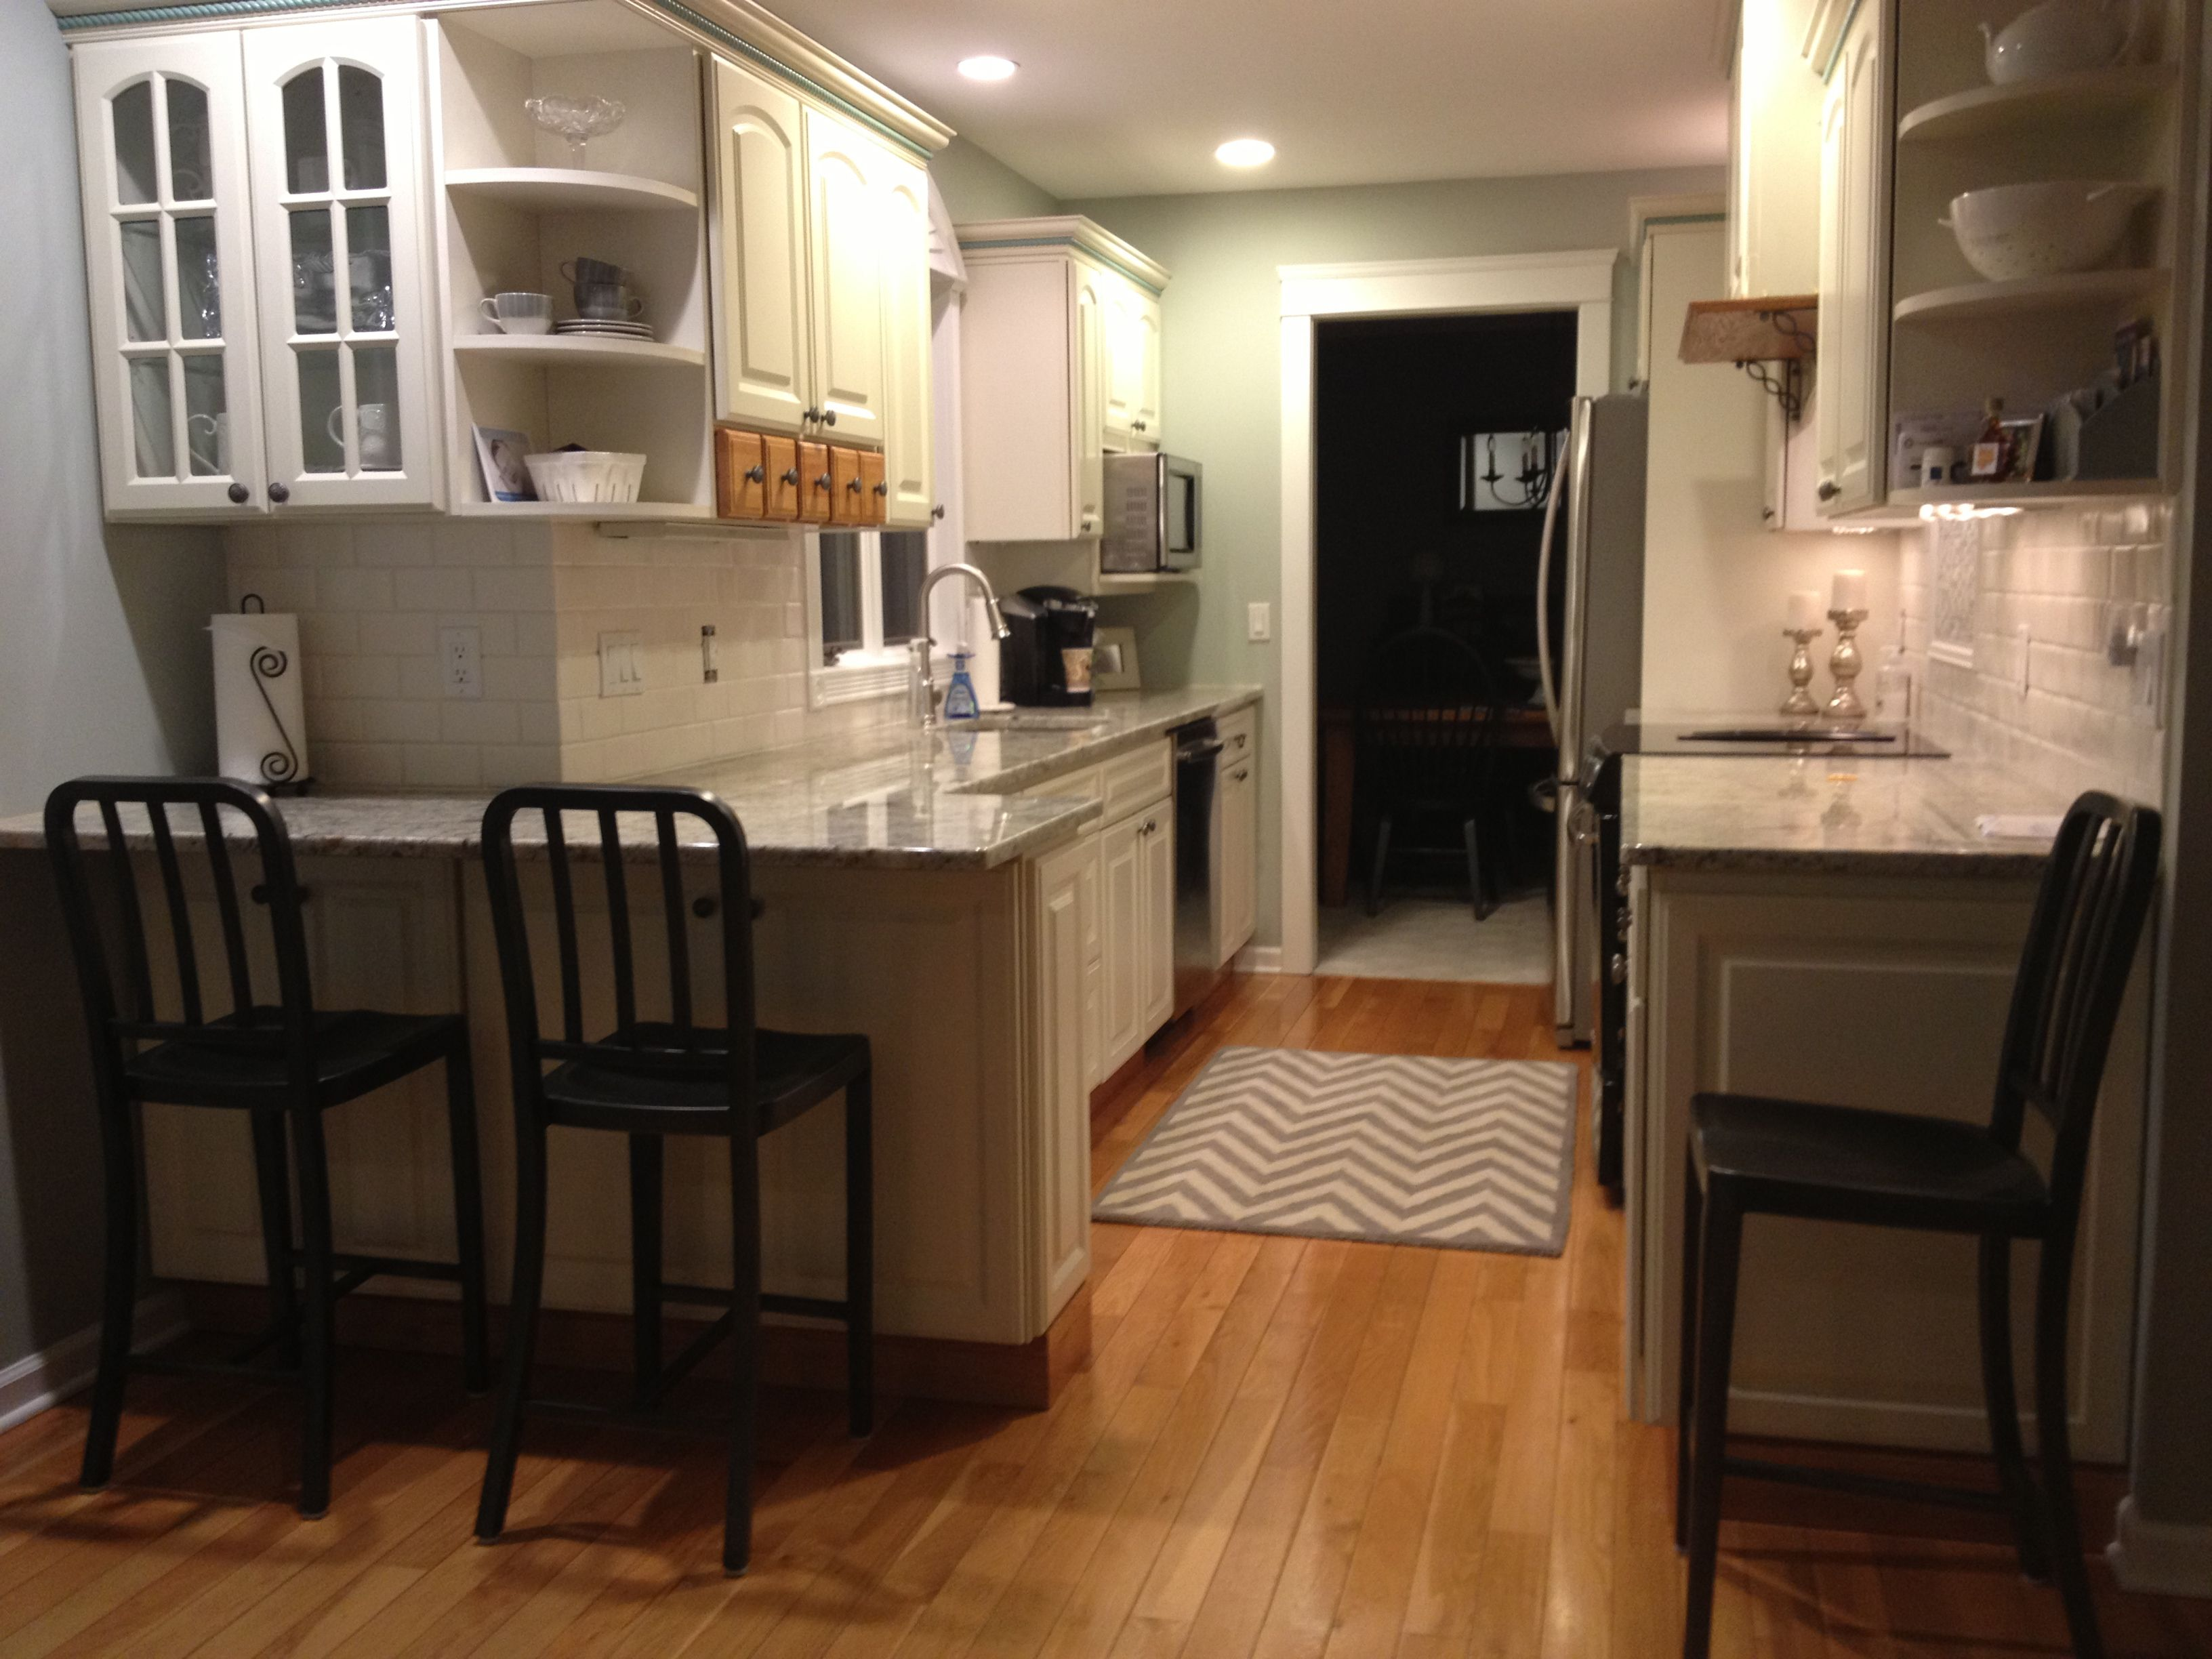 Galley Kitchen Remodel Ideas elegant galley kitchen remodels for your modern kitchen design